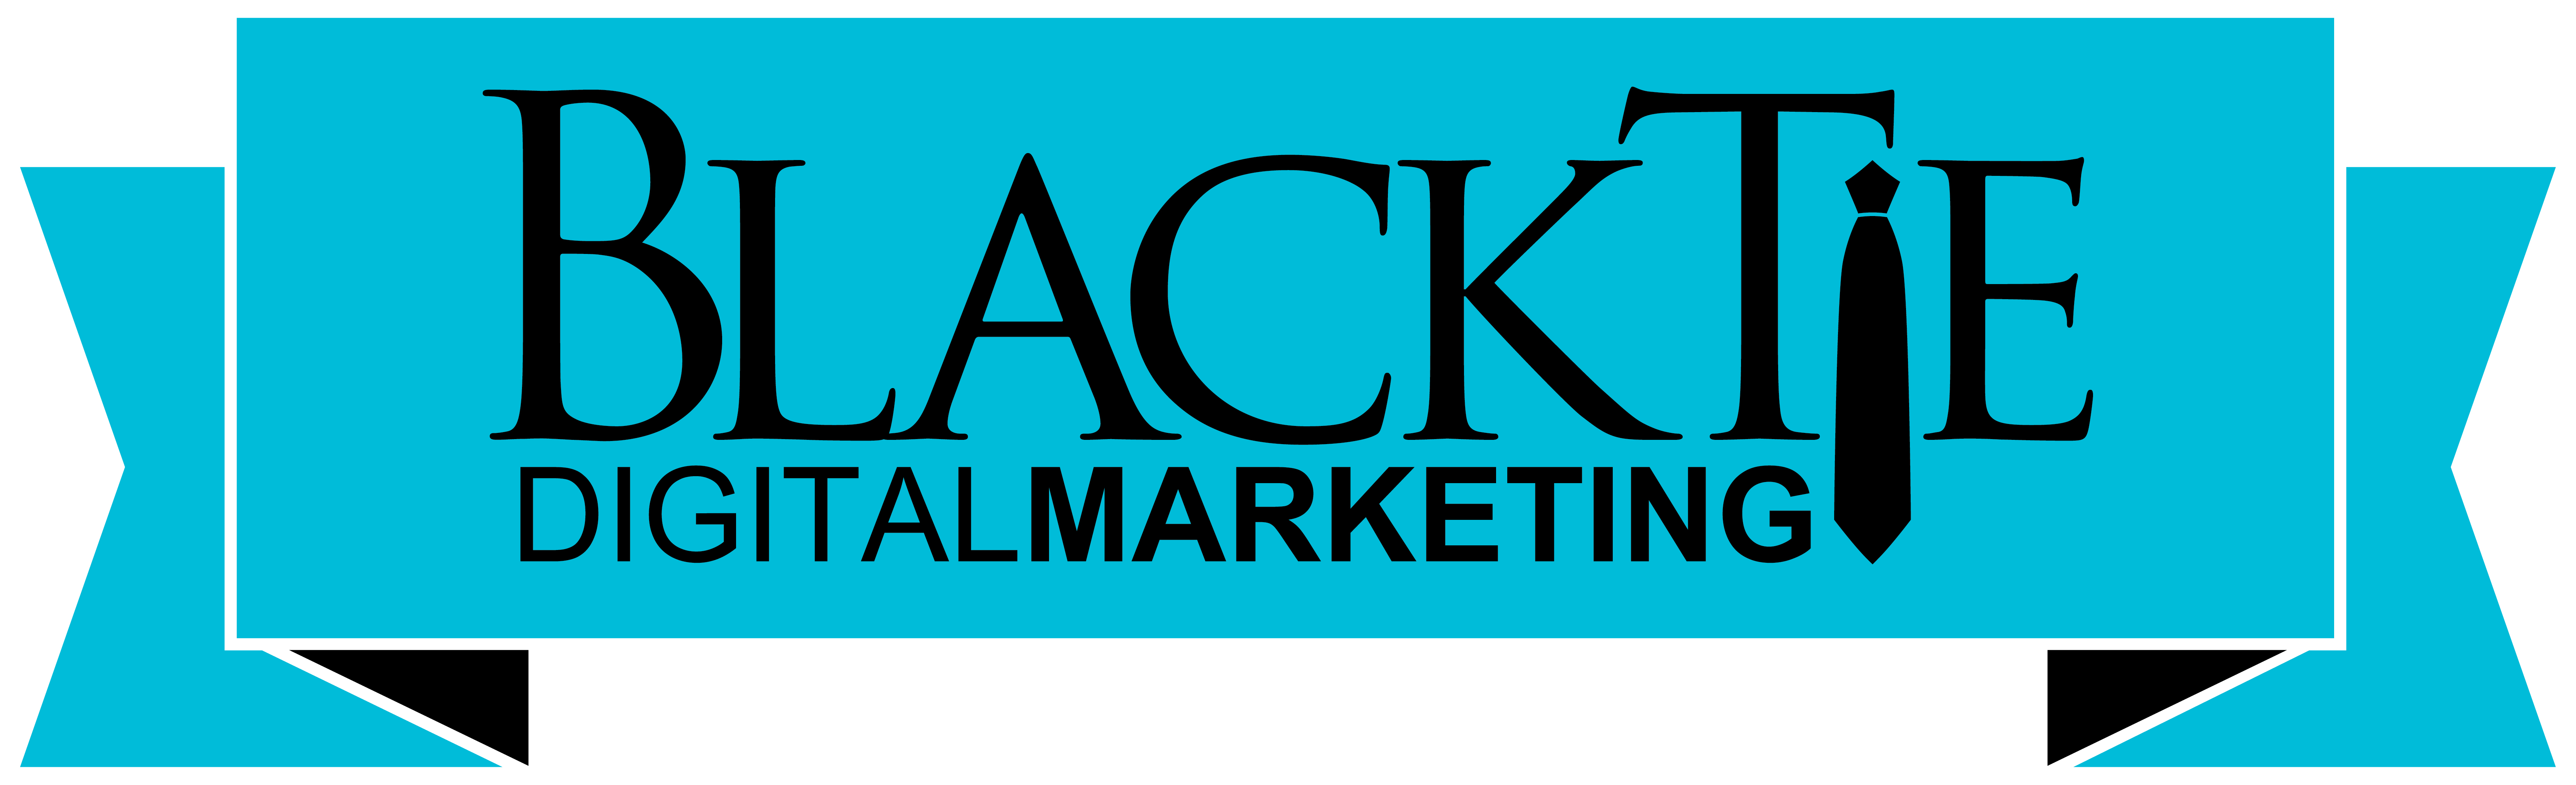 Black Tie Digital Marketing